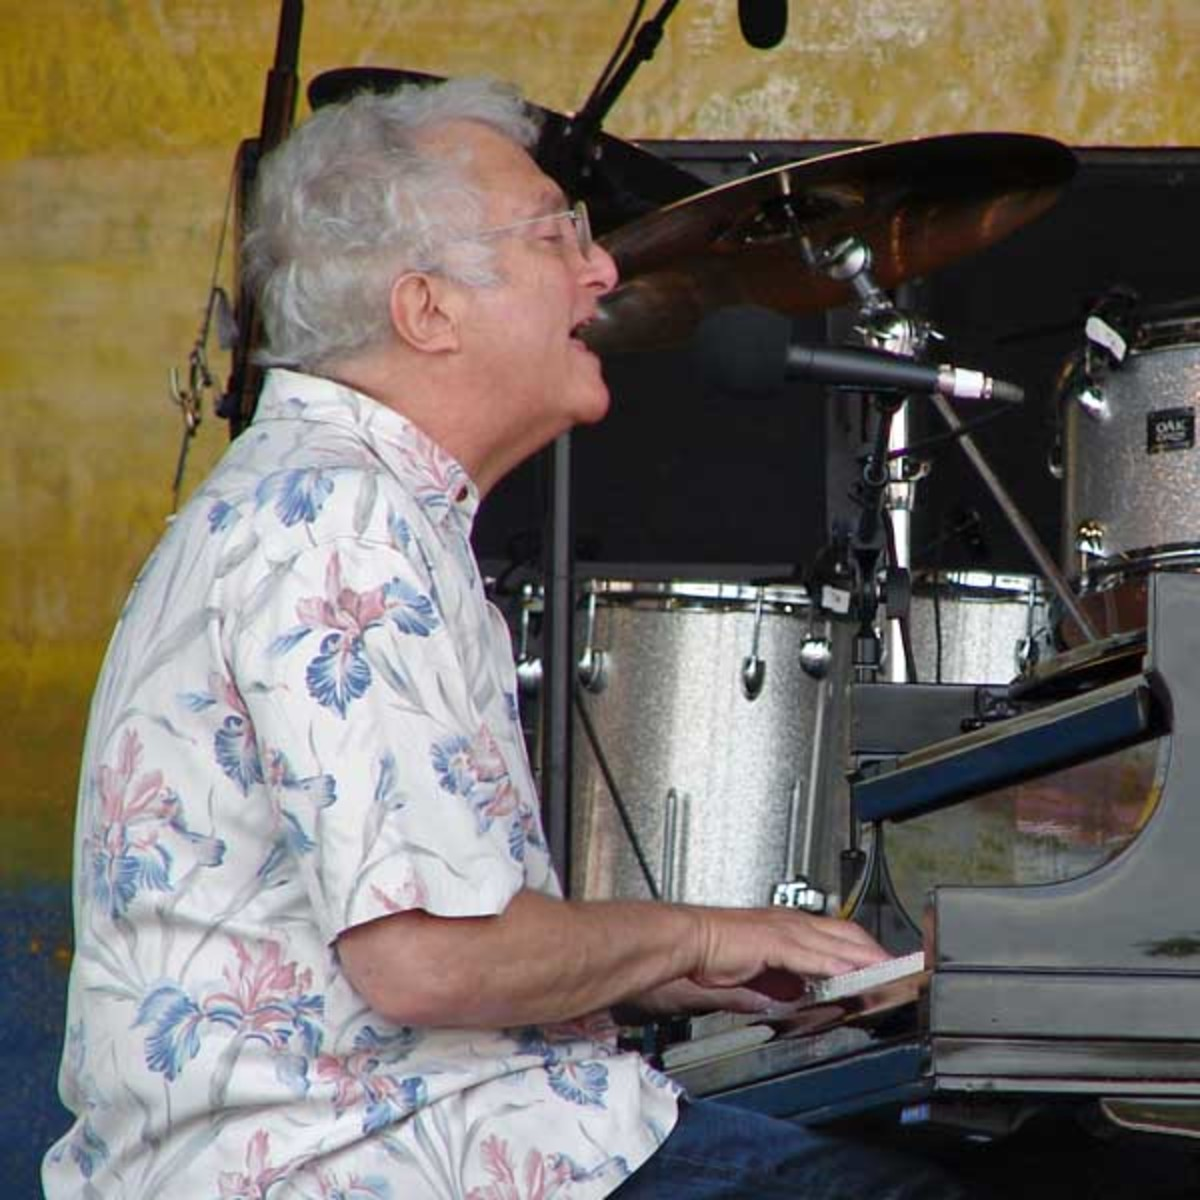 Randy Newman at the New Orleans Jazz & Heritage Festival in 2008. Randy wrote and performed You've got a Friend in Me for the movie Toy Story.